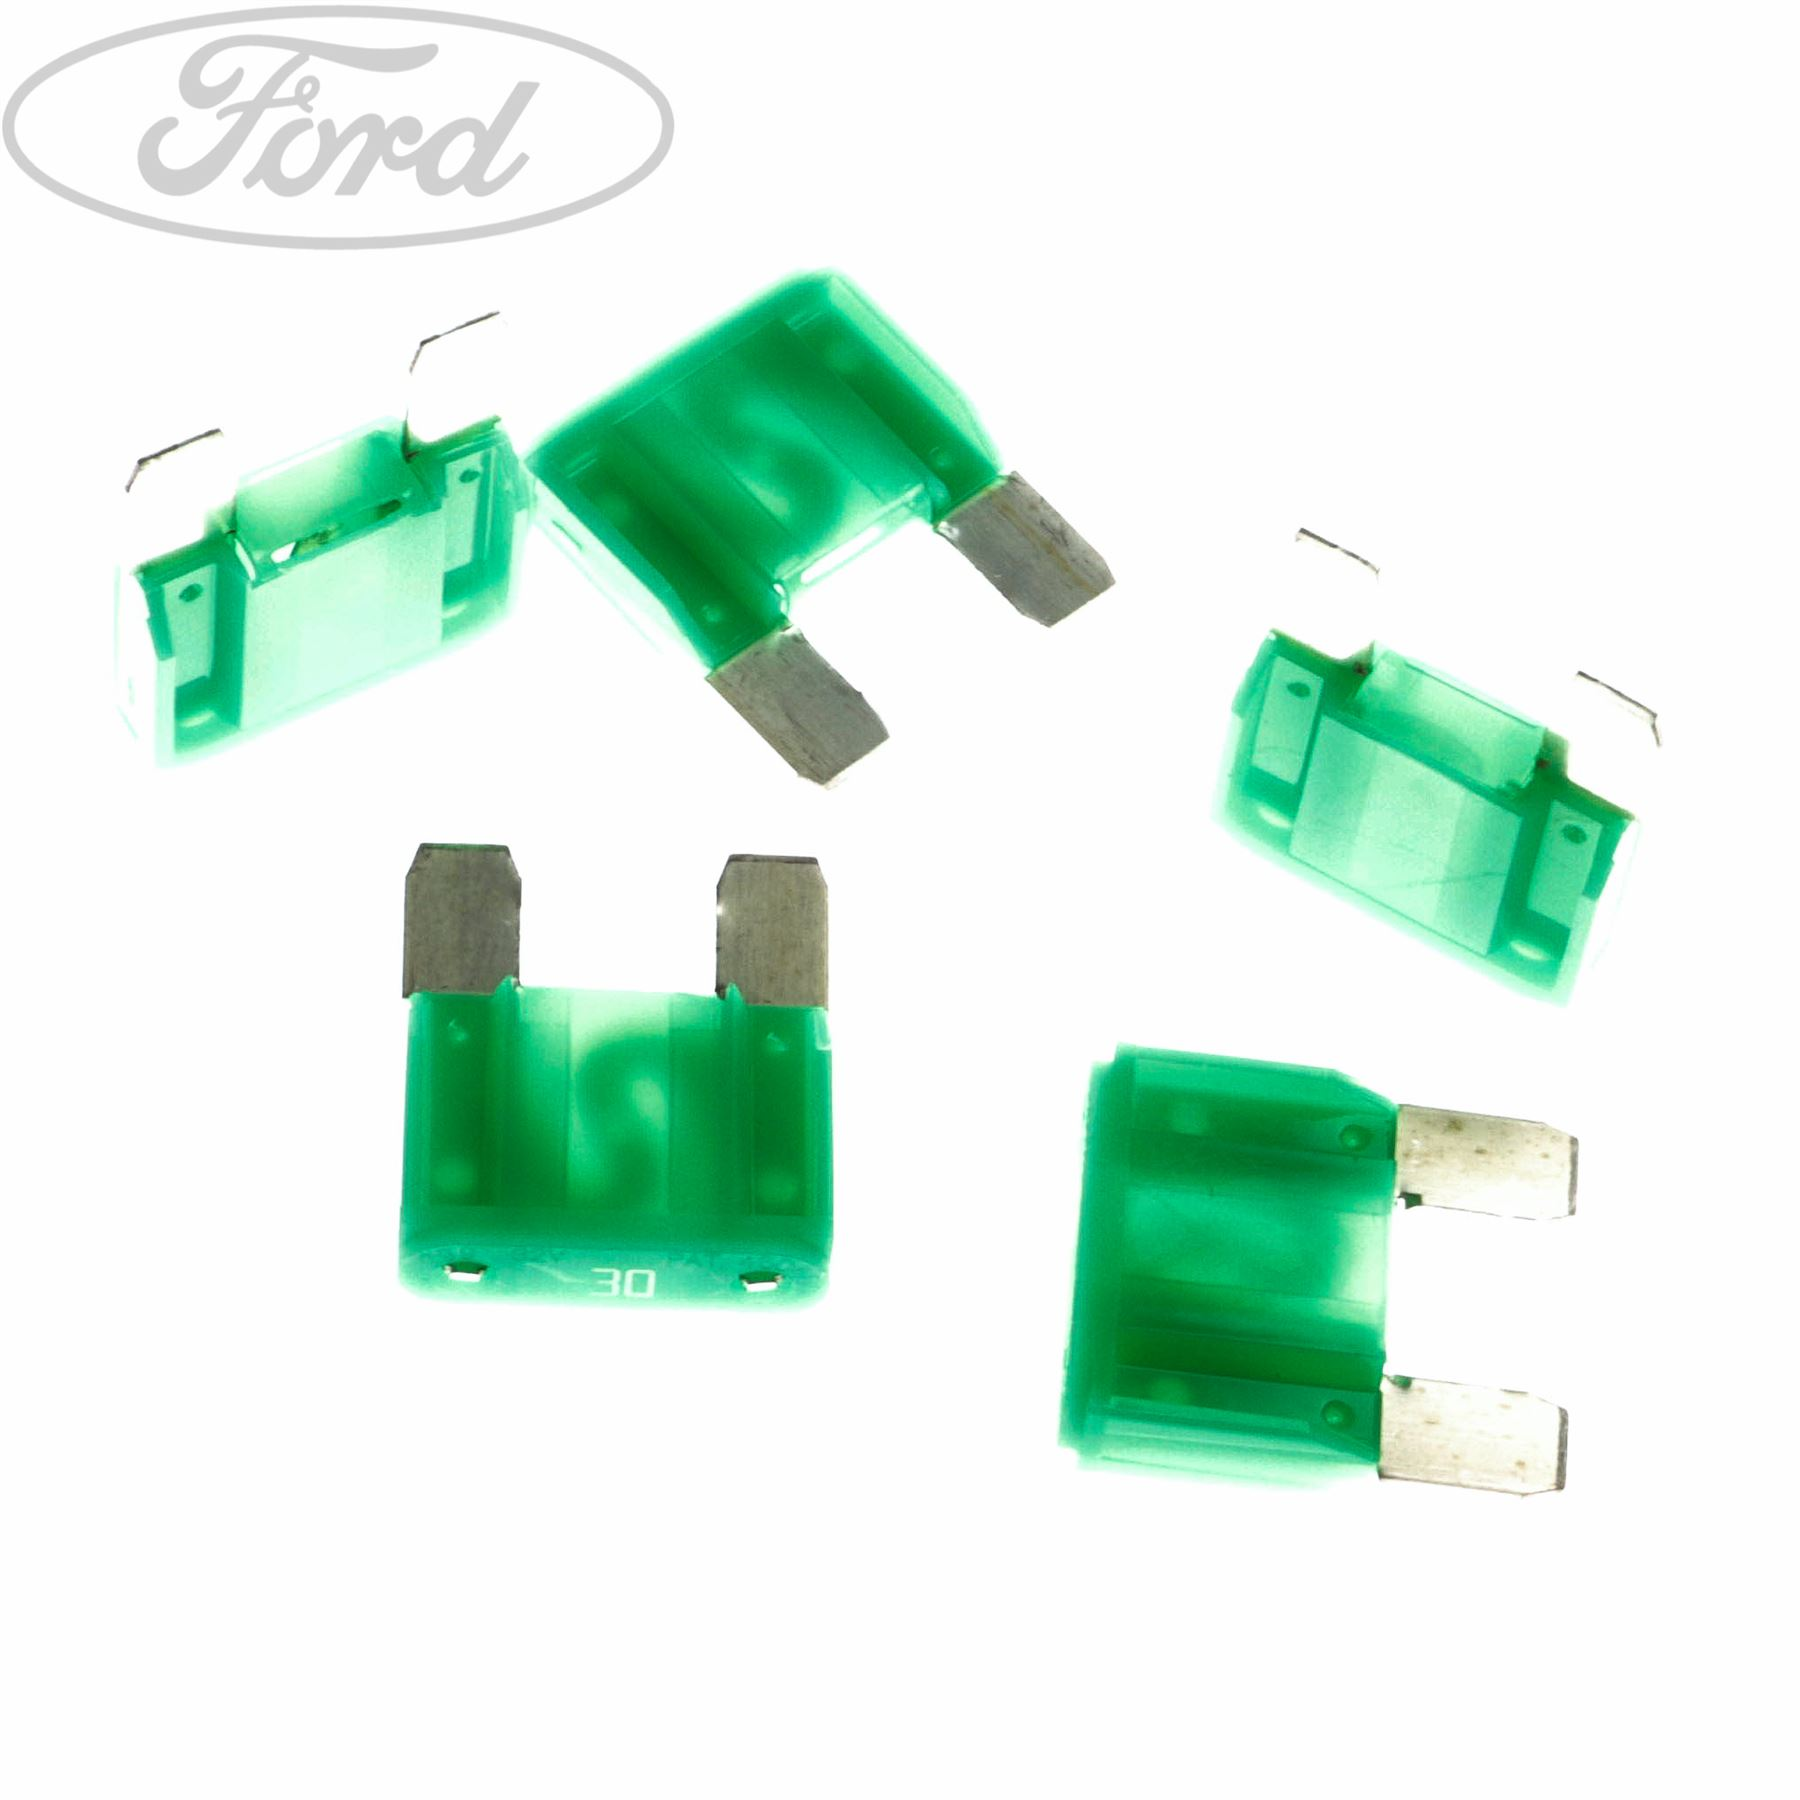 hight resolution of details about genuine ford focus mk1 maxi 30 amp fuse 3849960